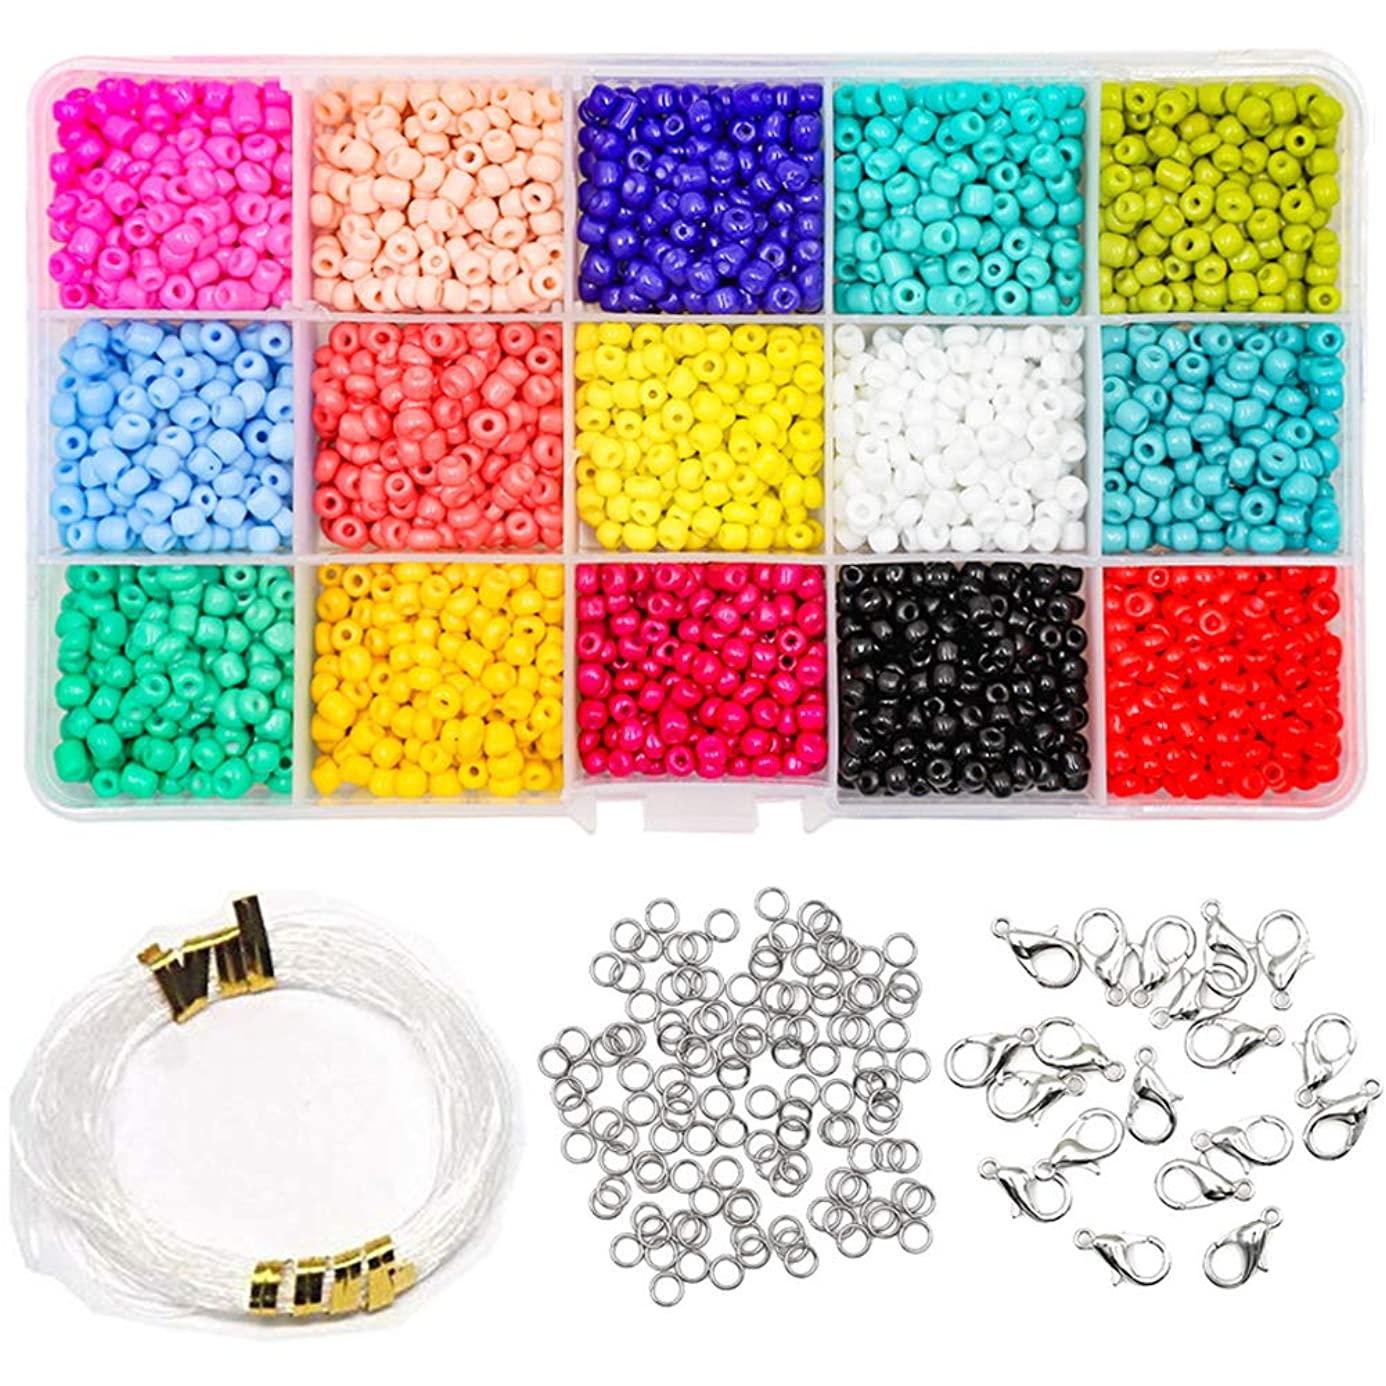 ZTL 2250pcs 15 Colors Glass Seed Beads for Jewelry Making, Bracelets, Necklaces, Key Chains with 1 Roll 16m Elastic String, 20pcs Lobster Clasps and 50pcs Open Jump Rings (3mm Round, Hole 0.6mm) yop9107938